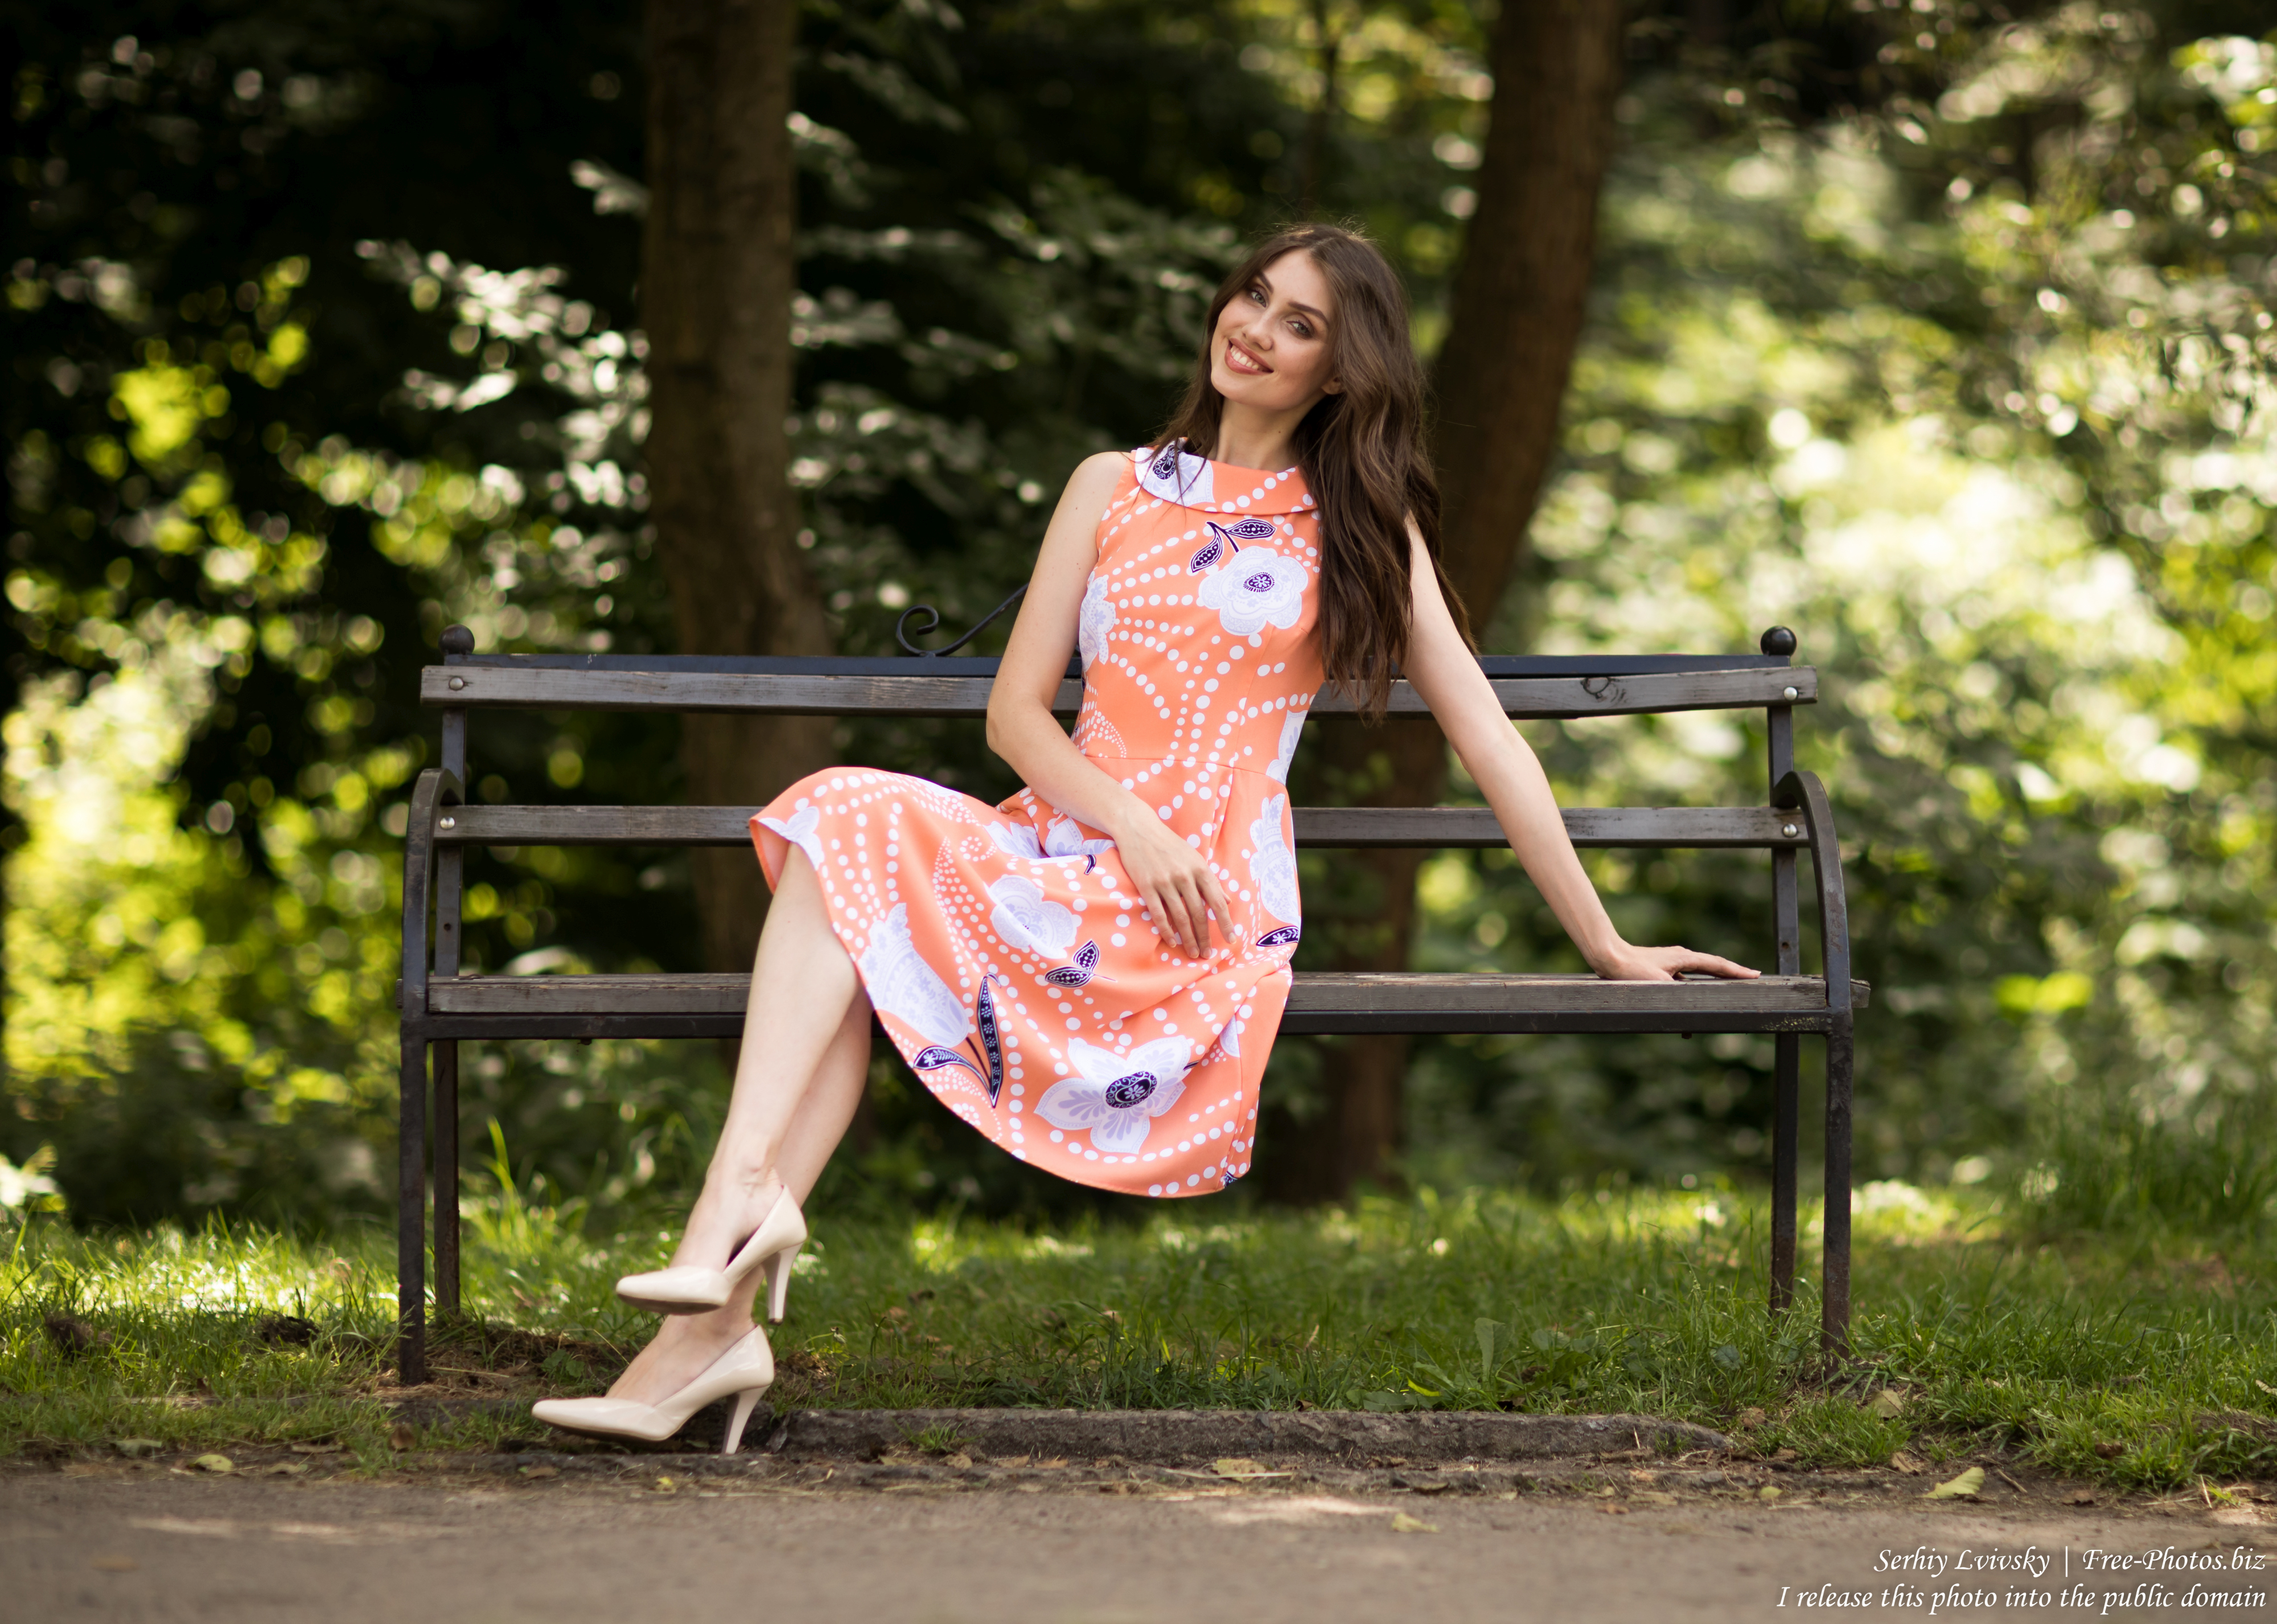 natalia_a_24-year-old_girl_photographed_in_july_2019_by_serhiy_lvivsky_32